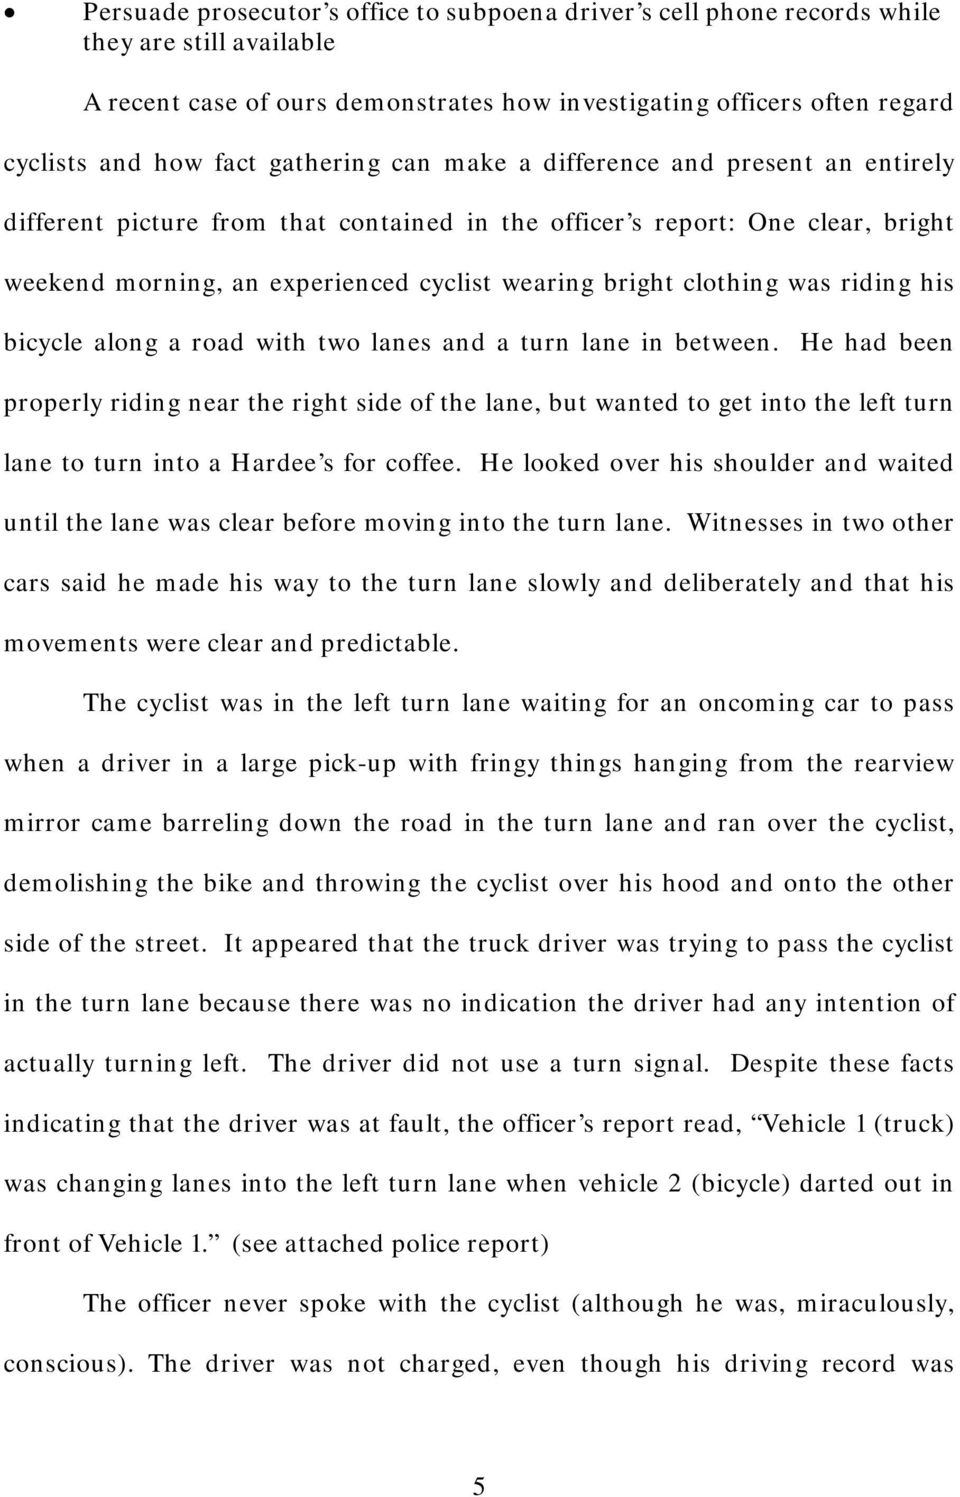 clothing was riding his bicycle along a road with two lanes and a turn lane in between.